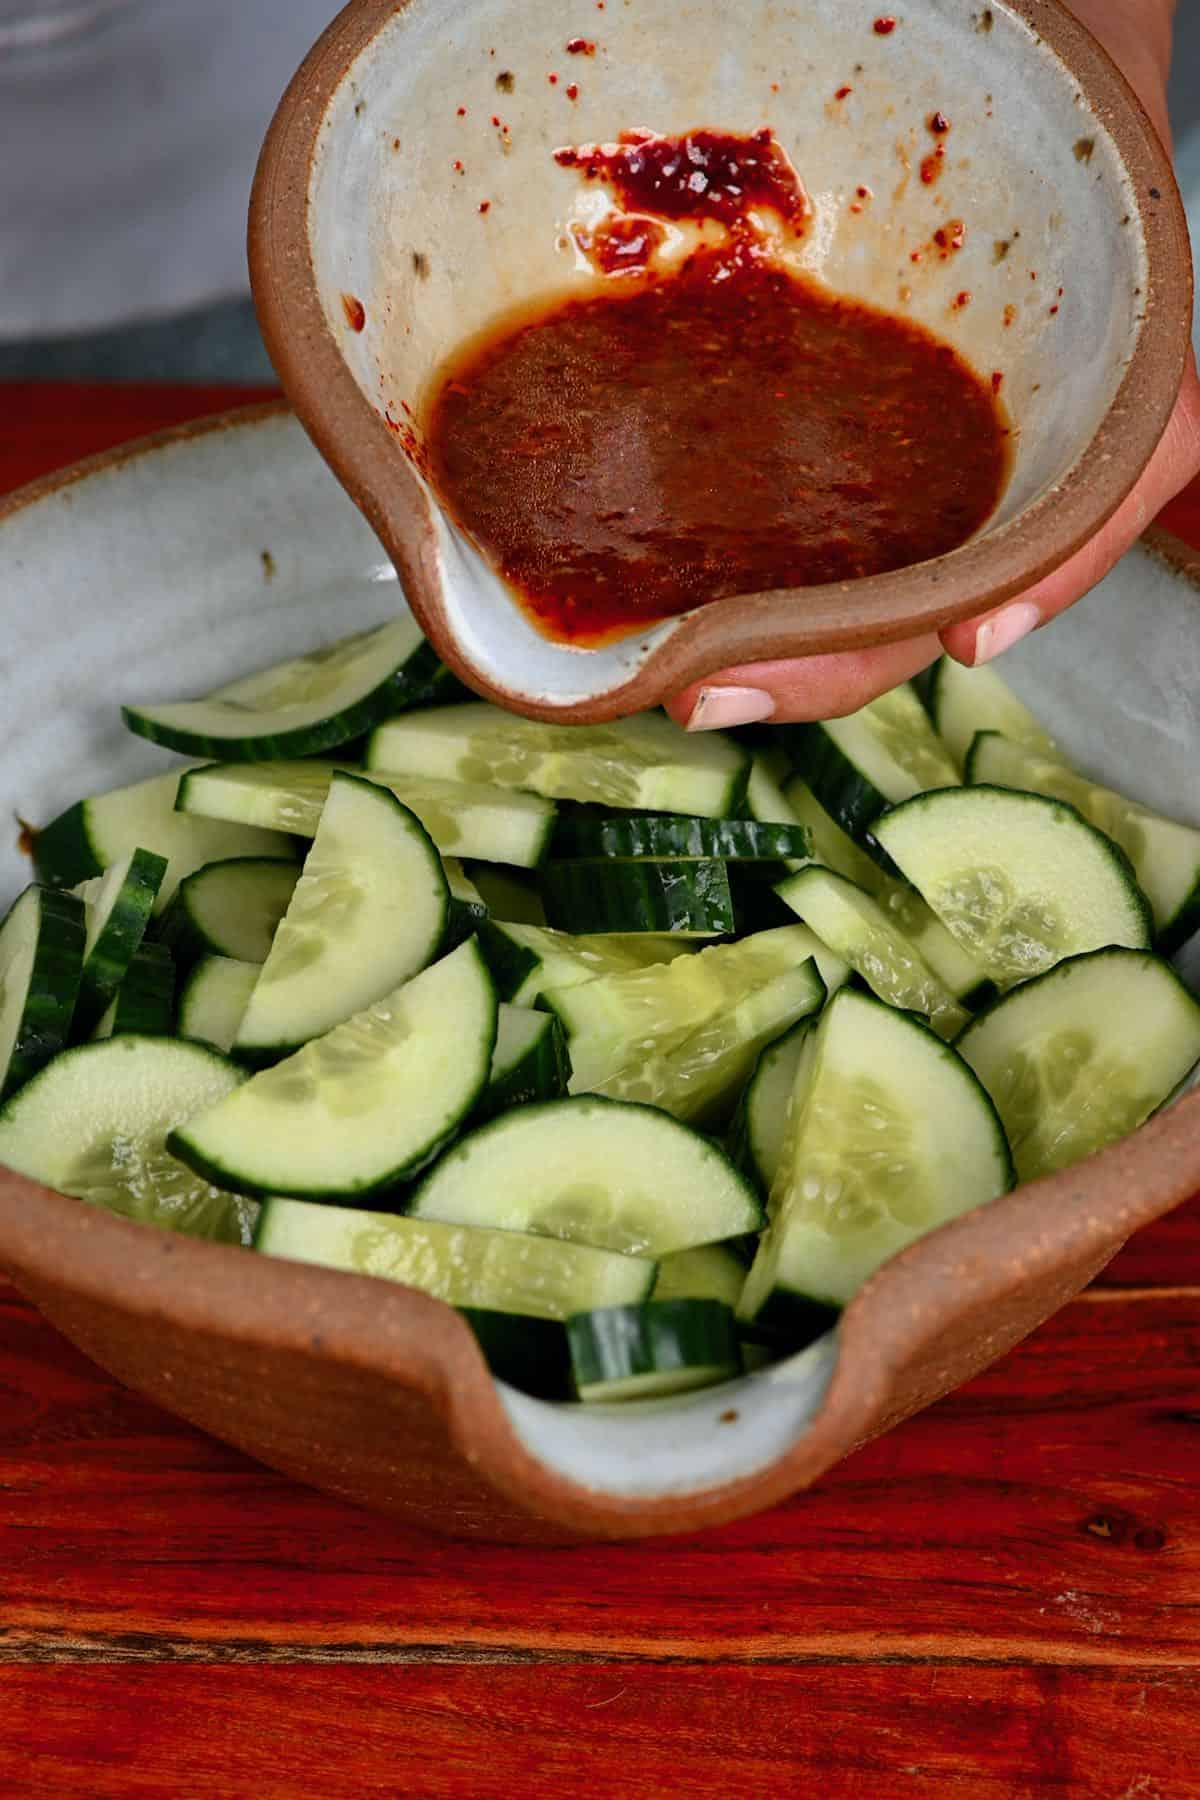 Pouring dressing over cucumbers